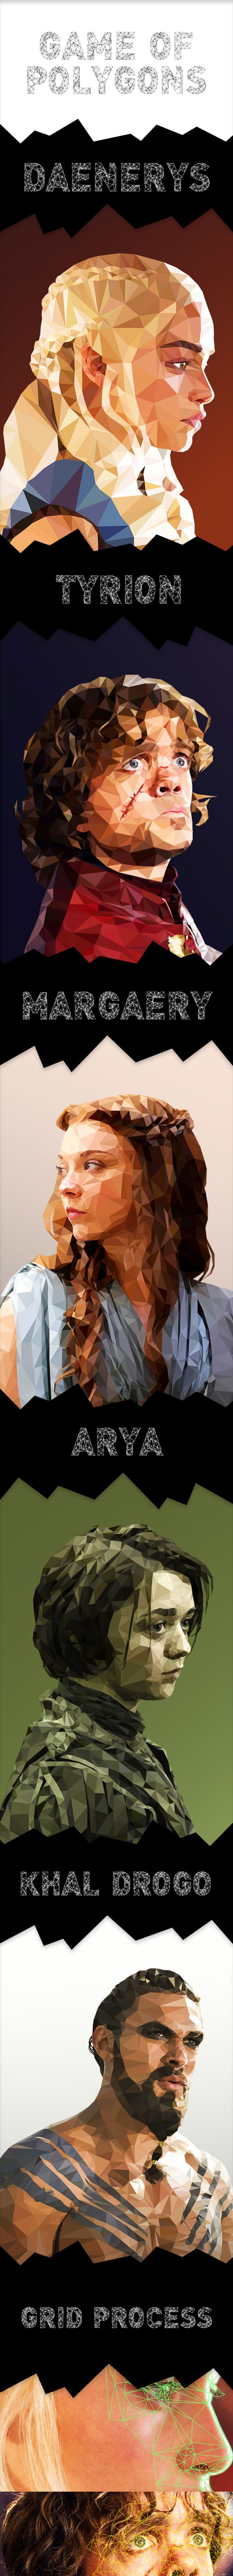 Game of Polygons - Low Poly Illustrations by Mordi Levi, via Behance